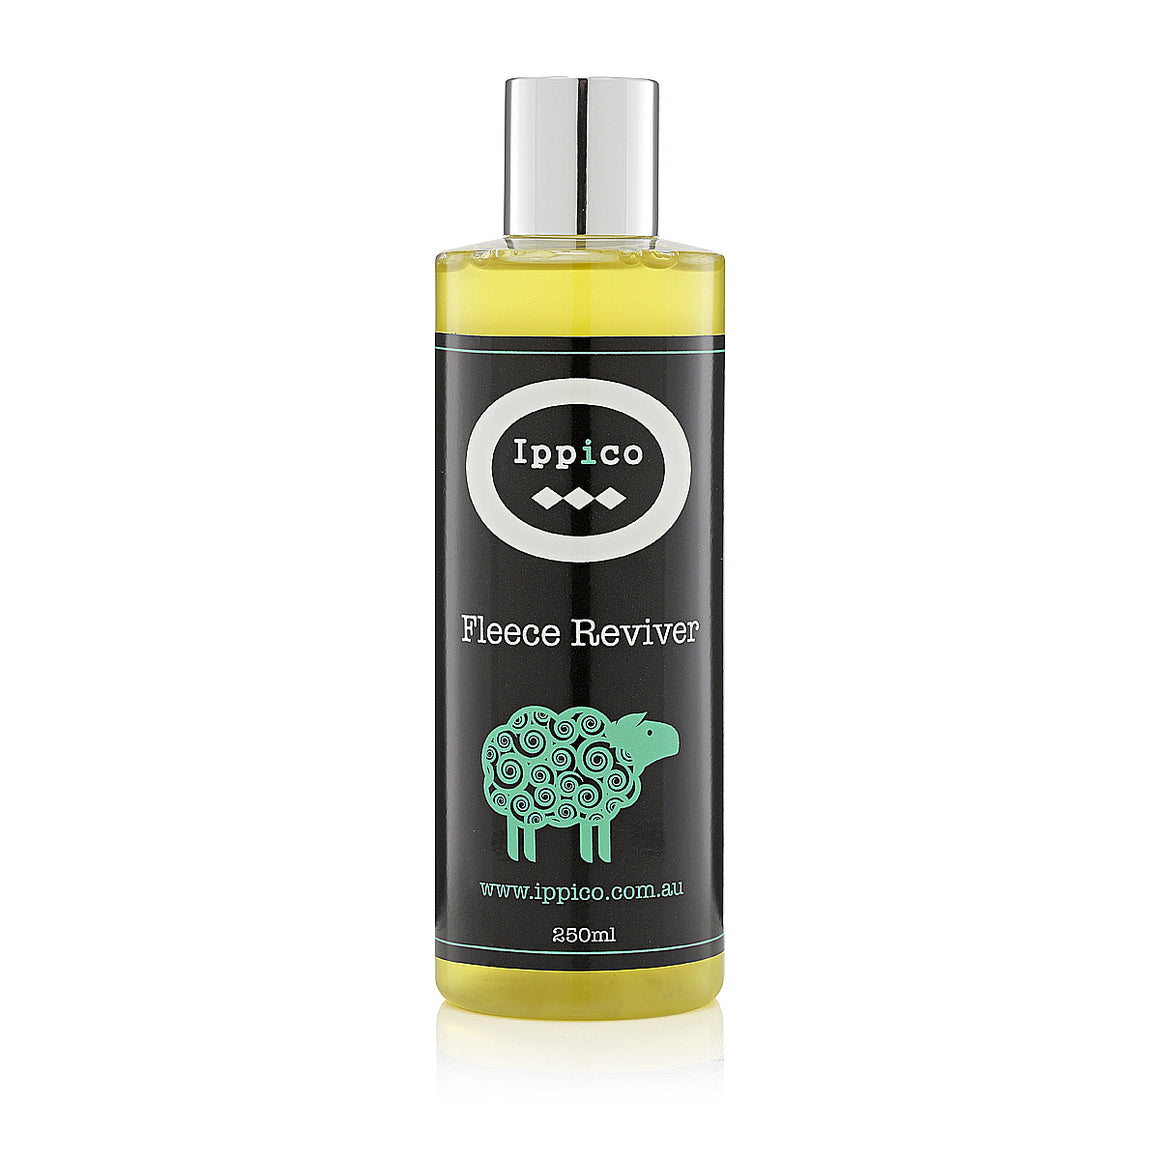 Ippico | Fleece Reviver | 250ml